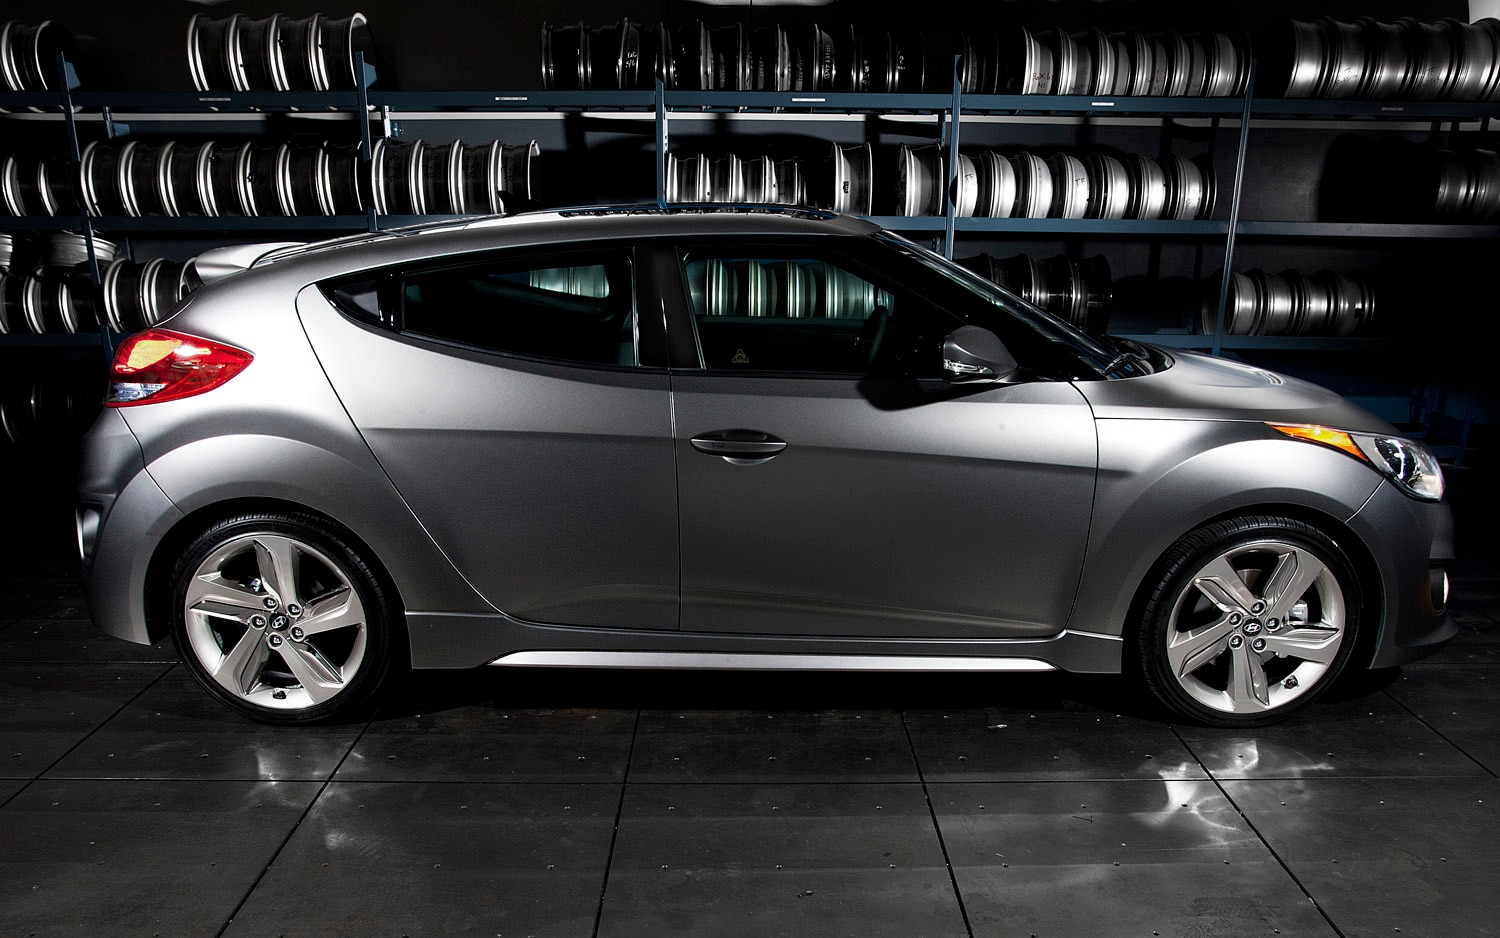 2013 Hyundai Veloster Turbo Right Side View1